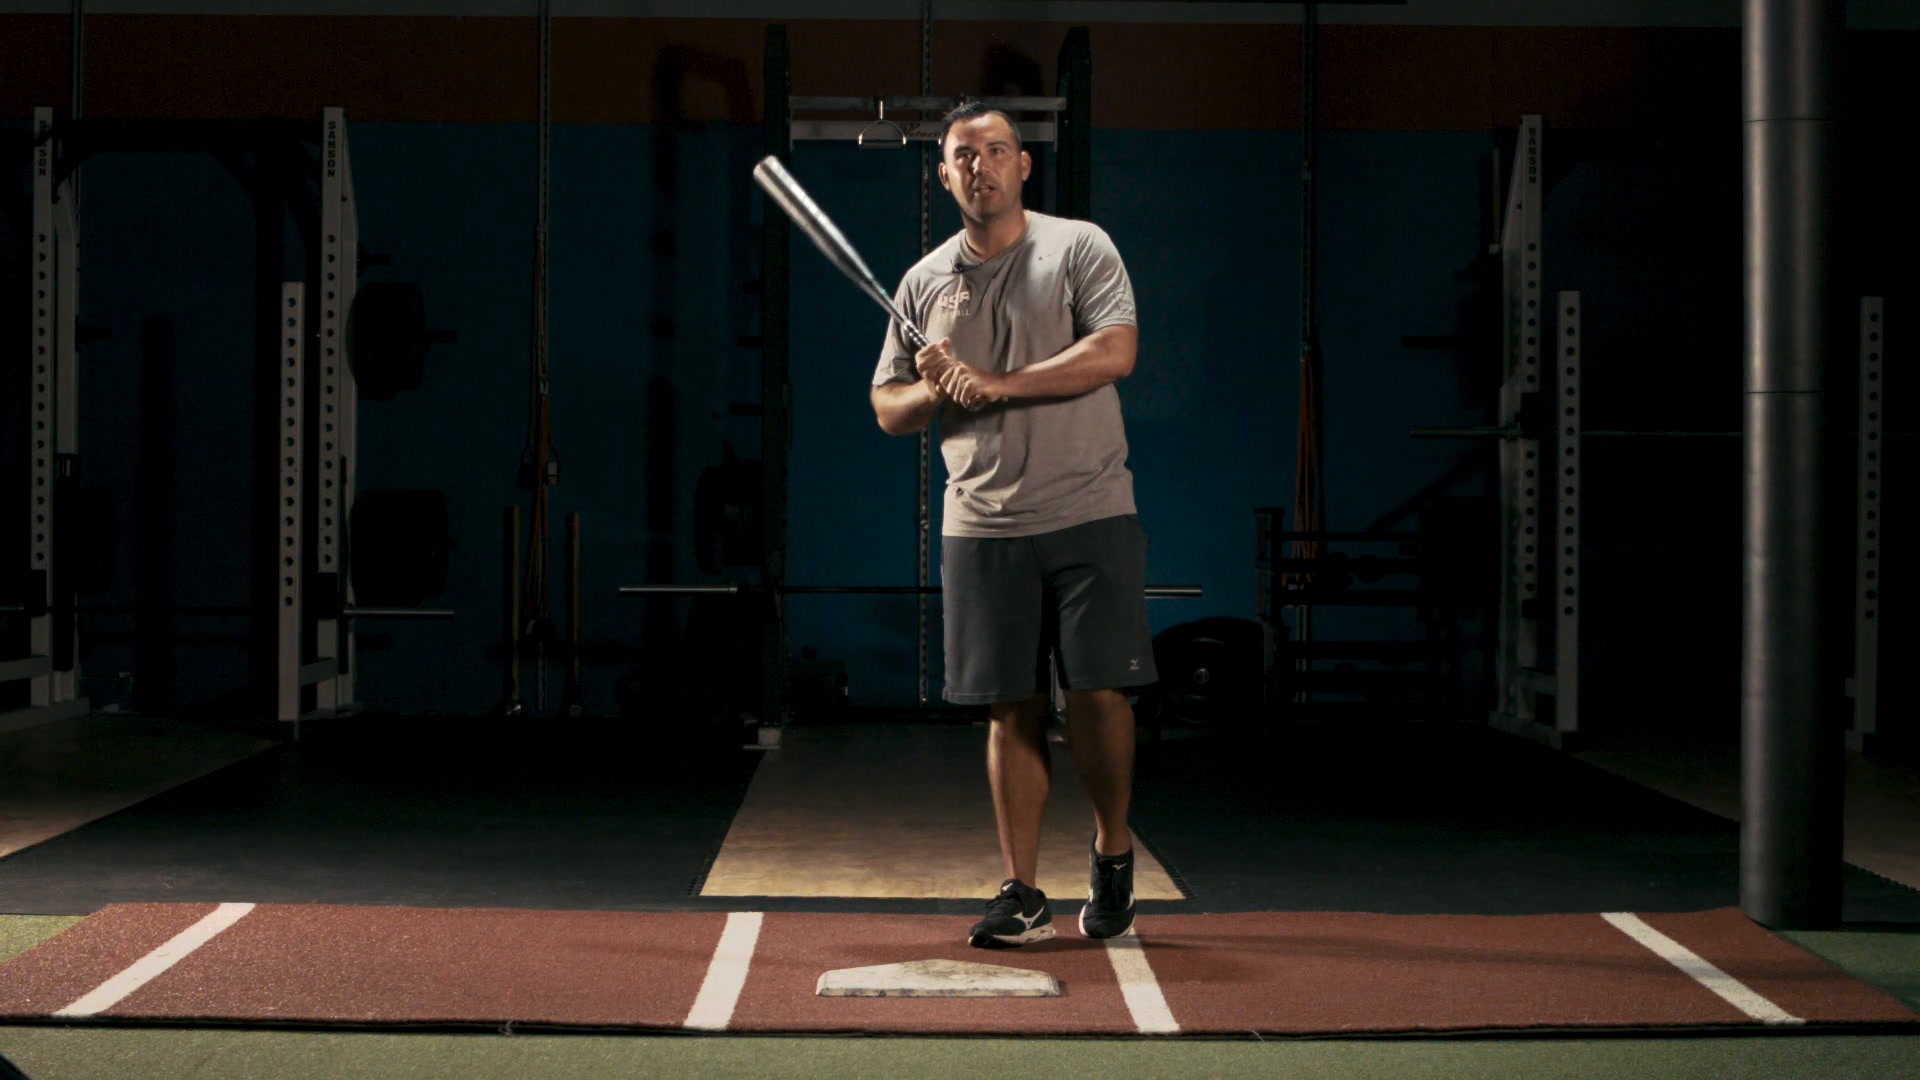 The Most Common Mistake that Young Hitters Make